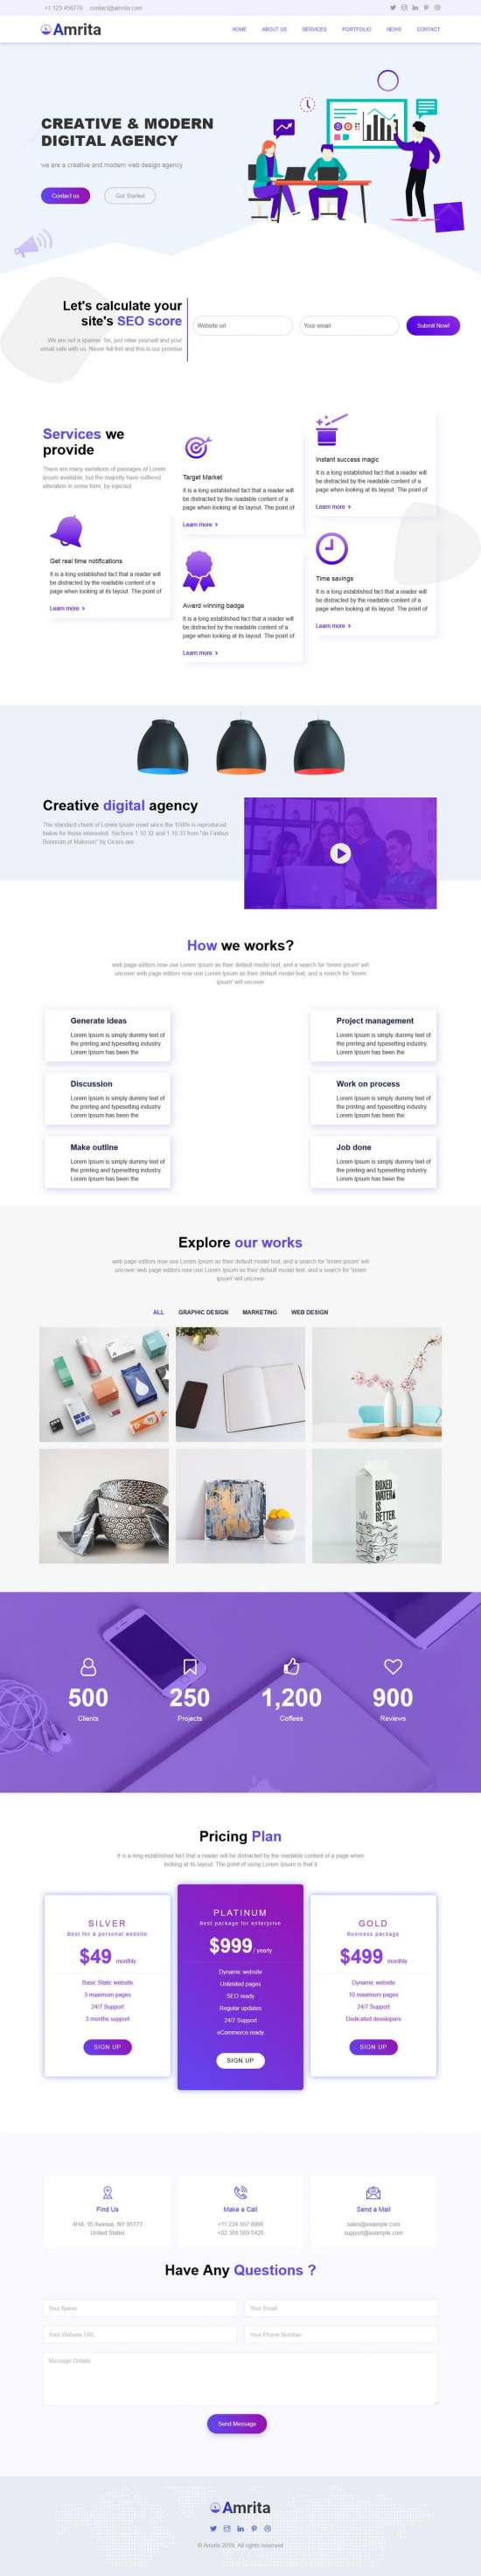 amrita wordpress theme 01 550x2946 - Amrita WordPress Theme